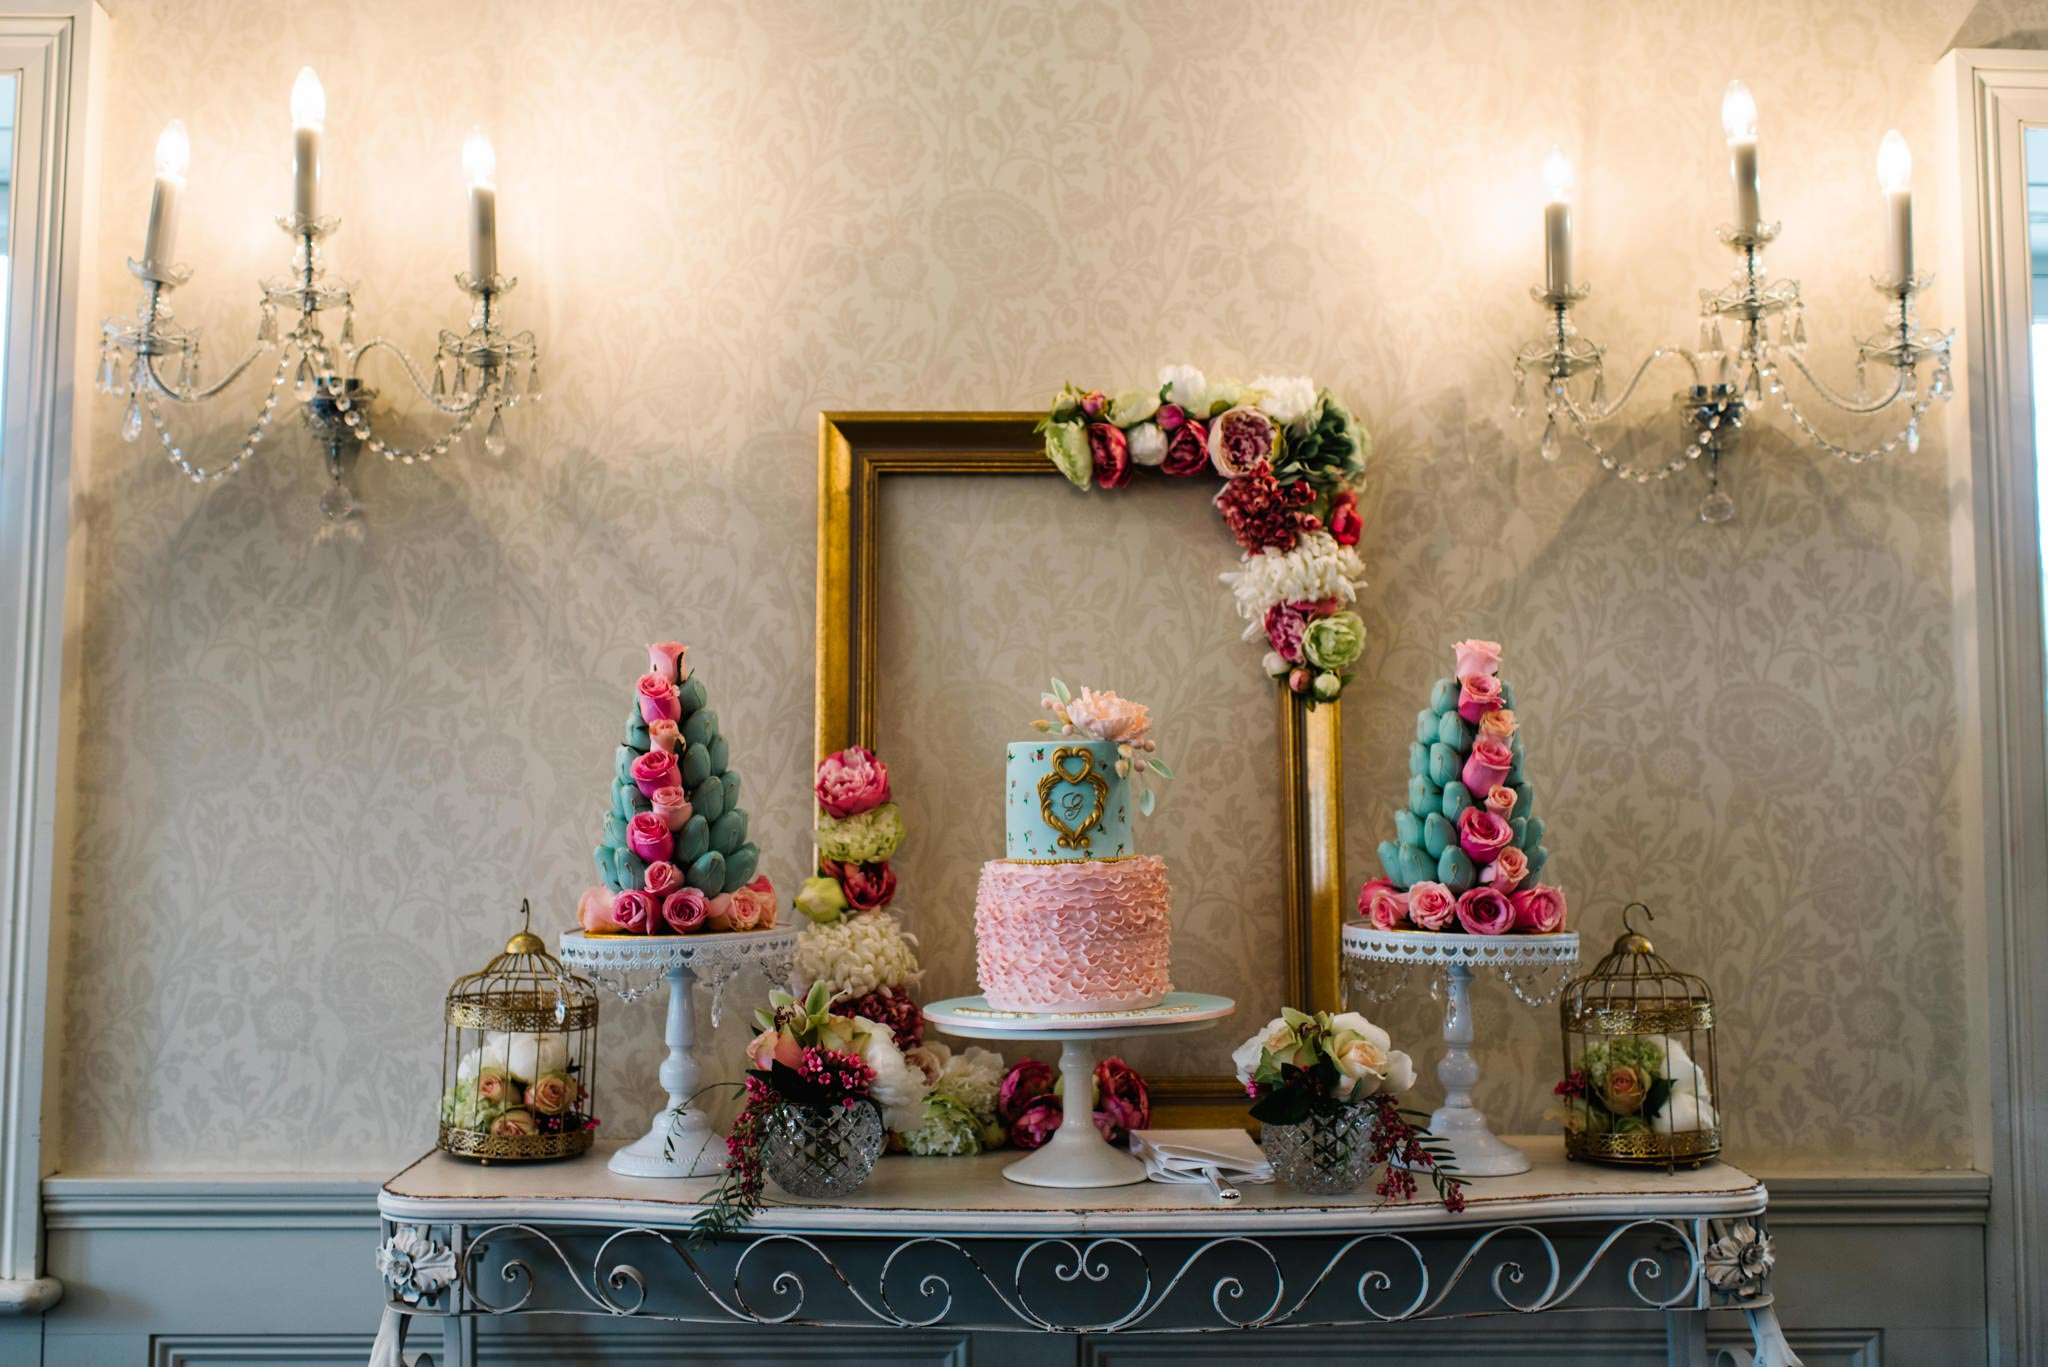 Cake table and decorative wall sconces at Dunbar House